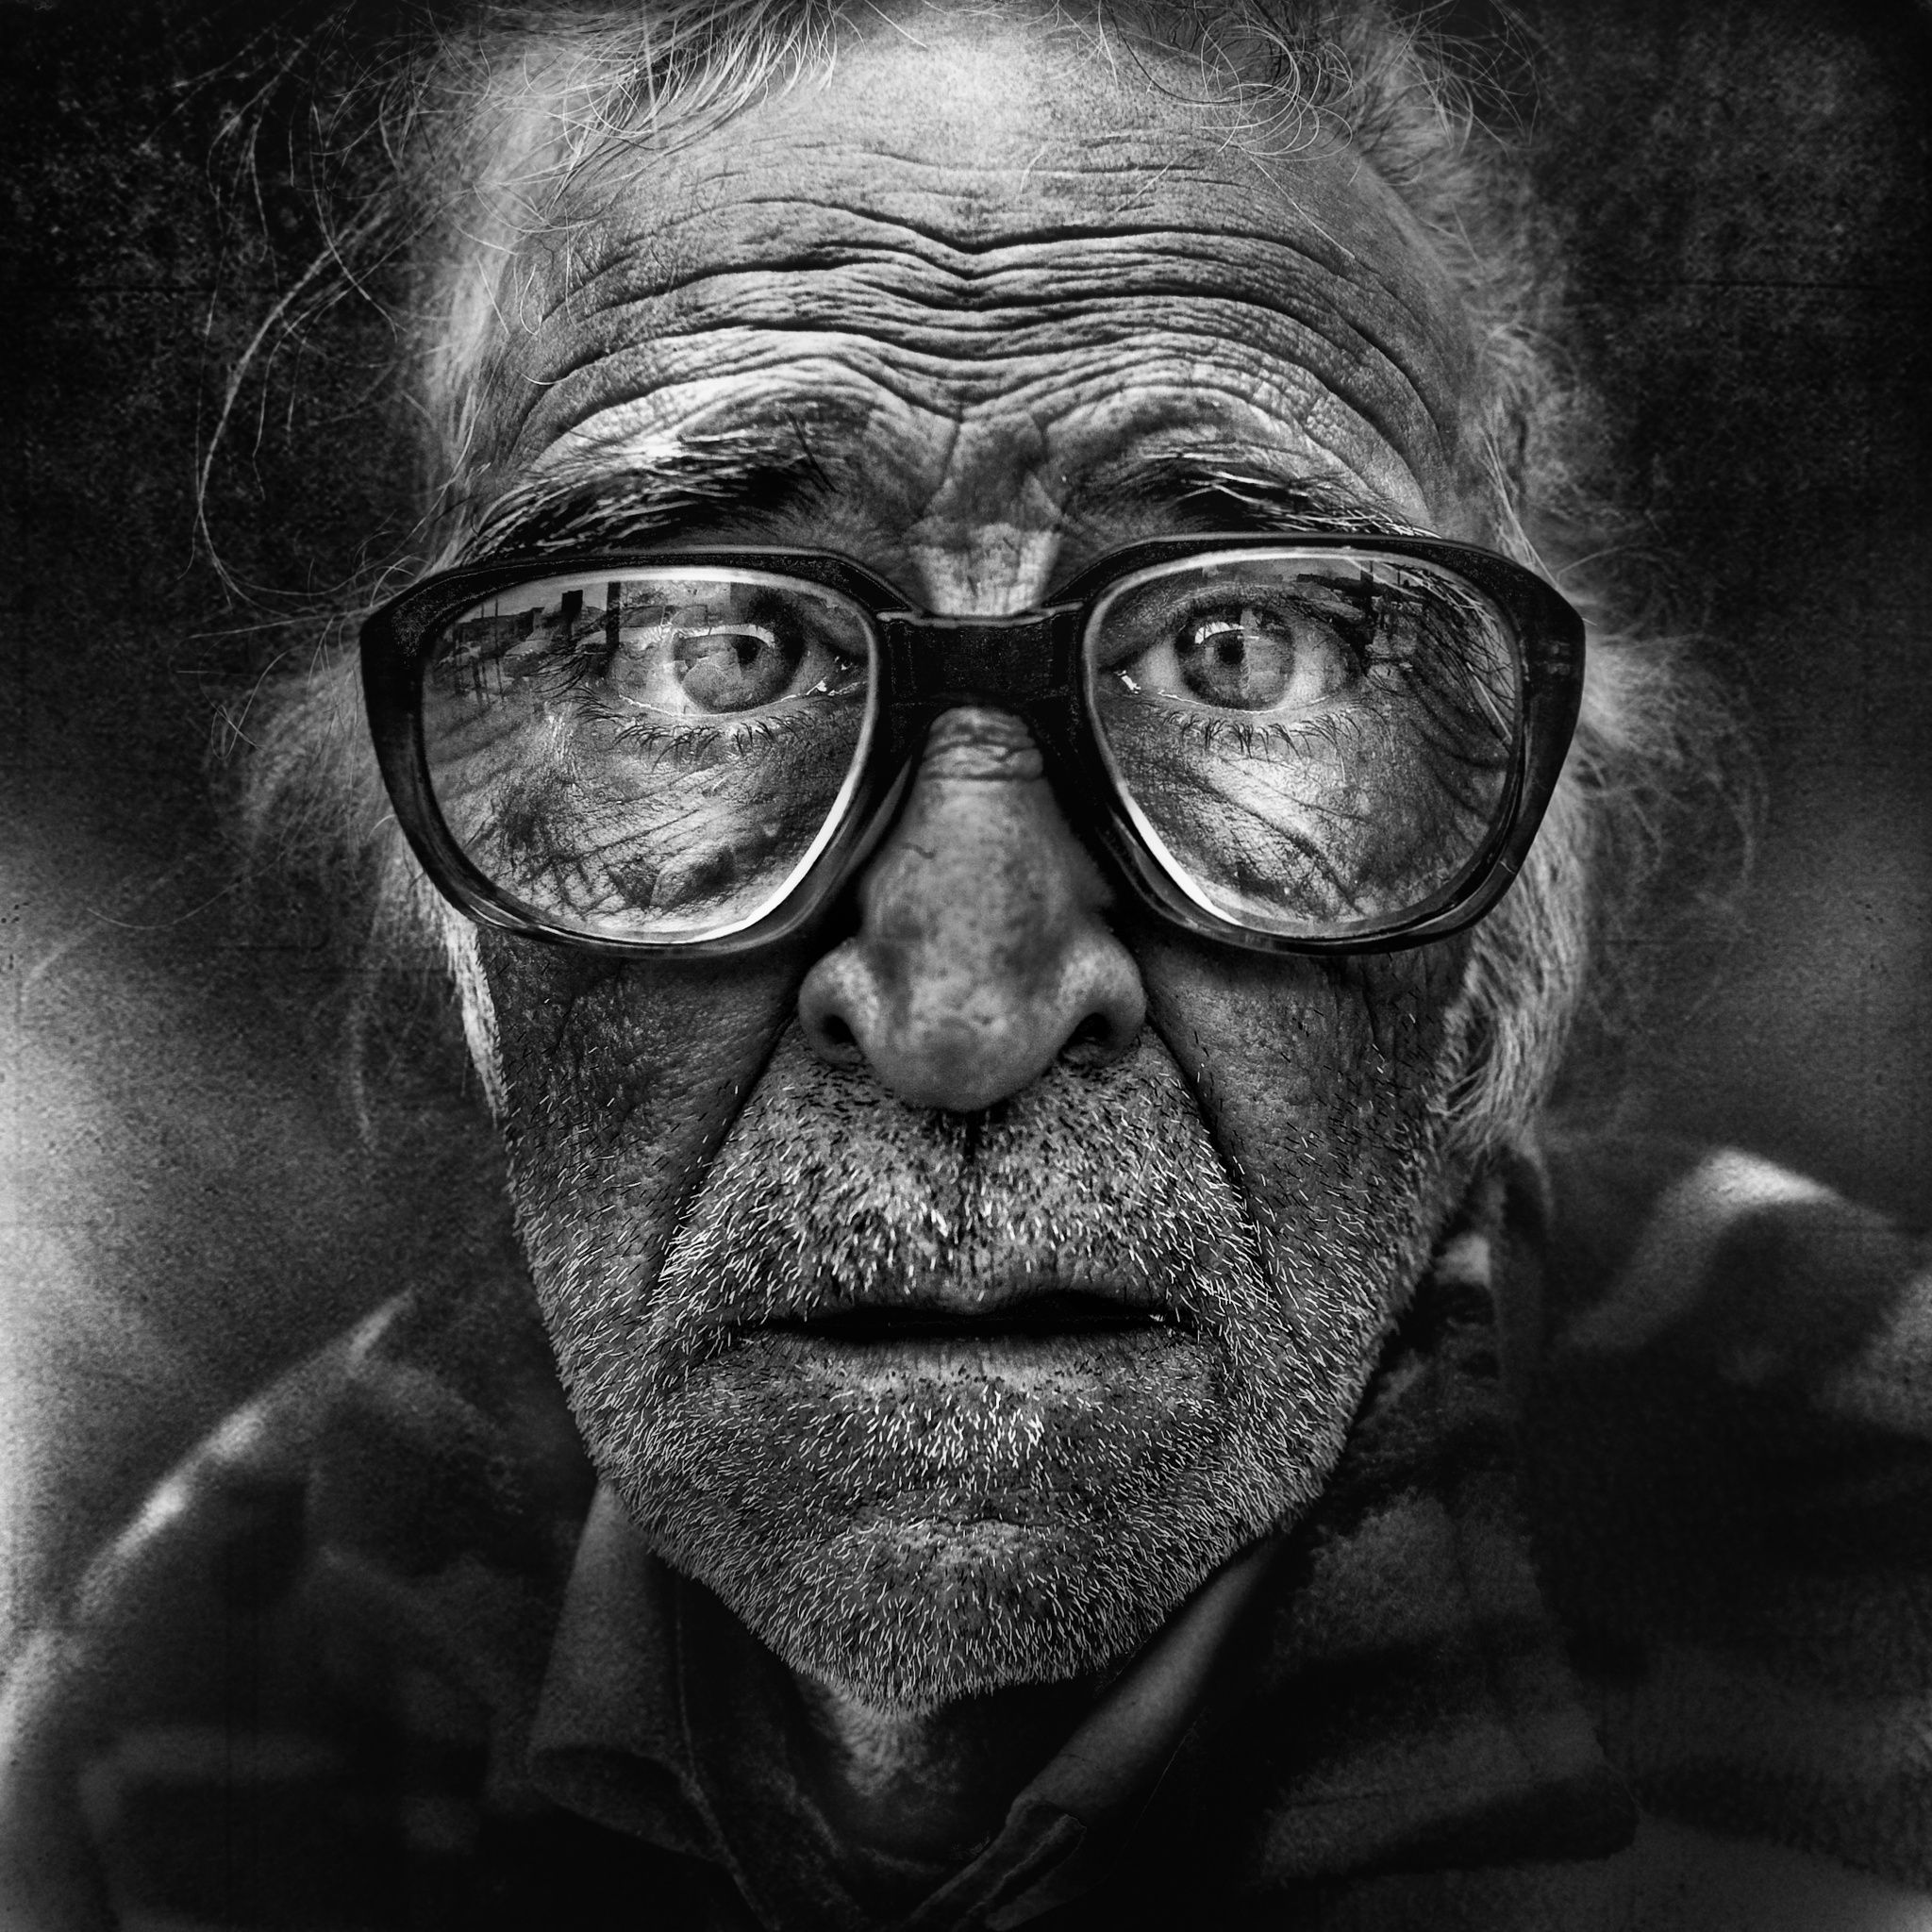 Manchester by Lee Jeffries on 500px